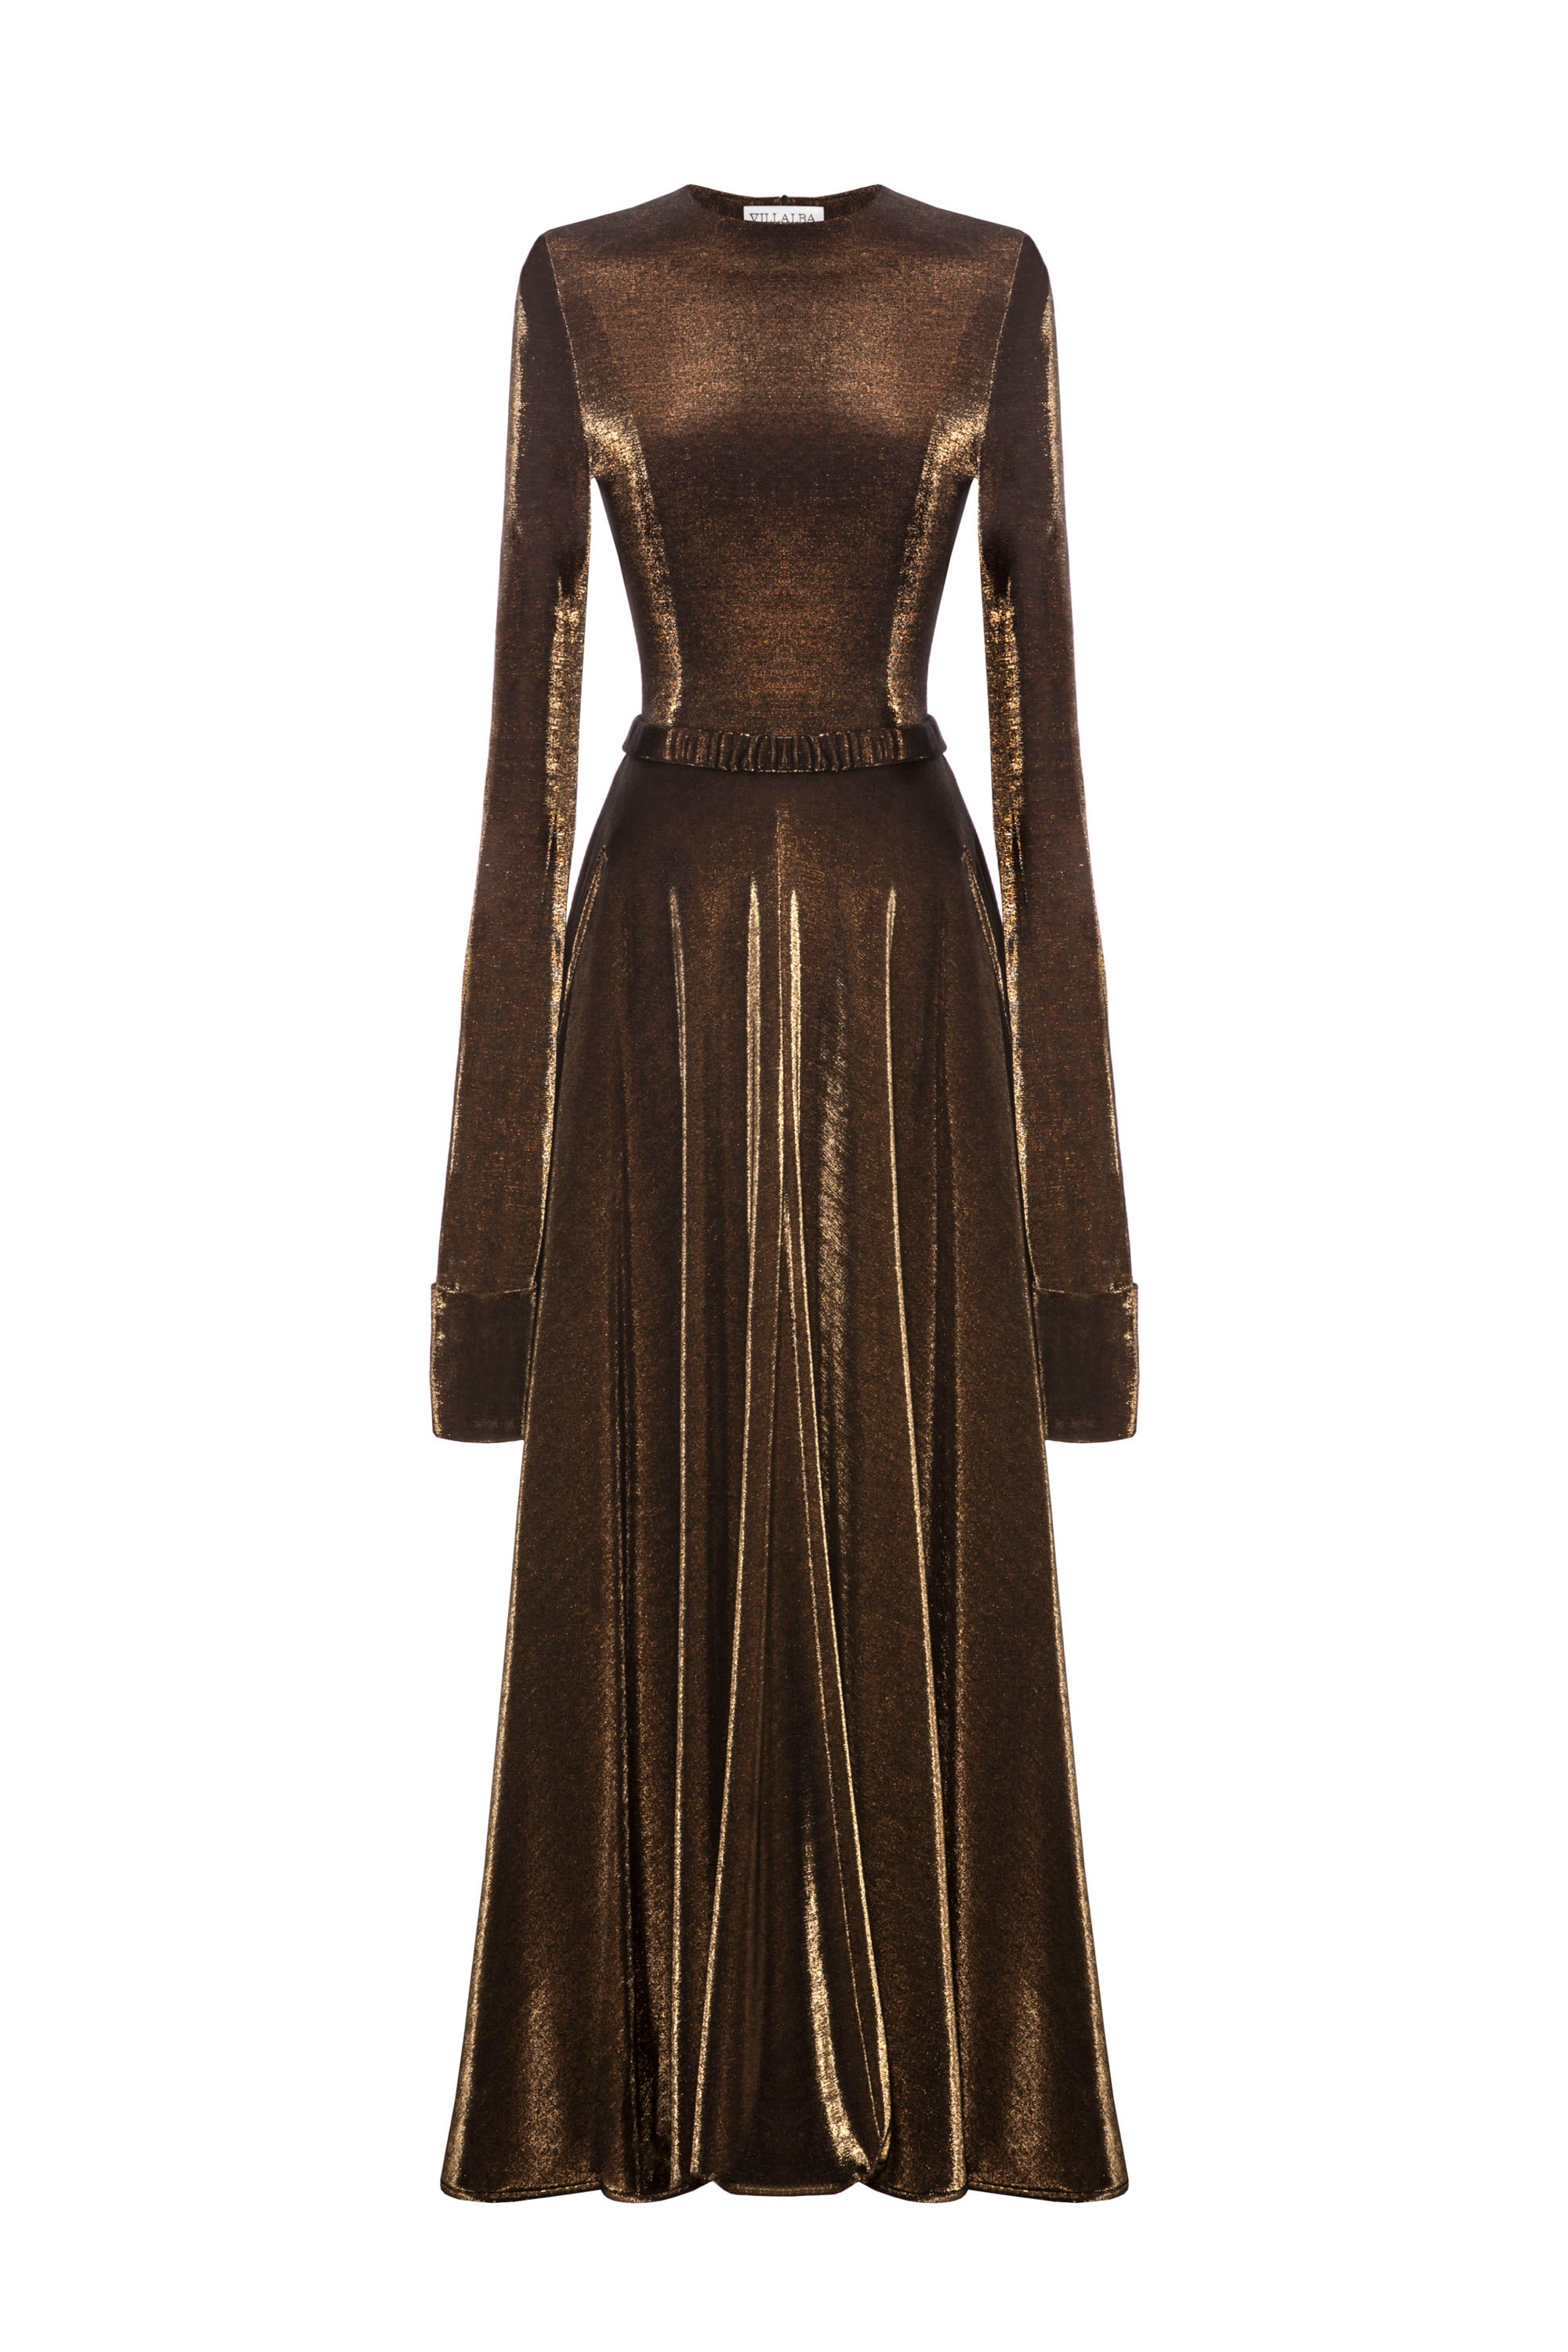 Dress RTWED7-COPPER